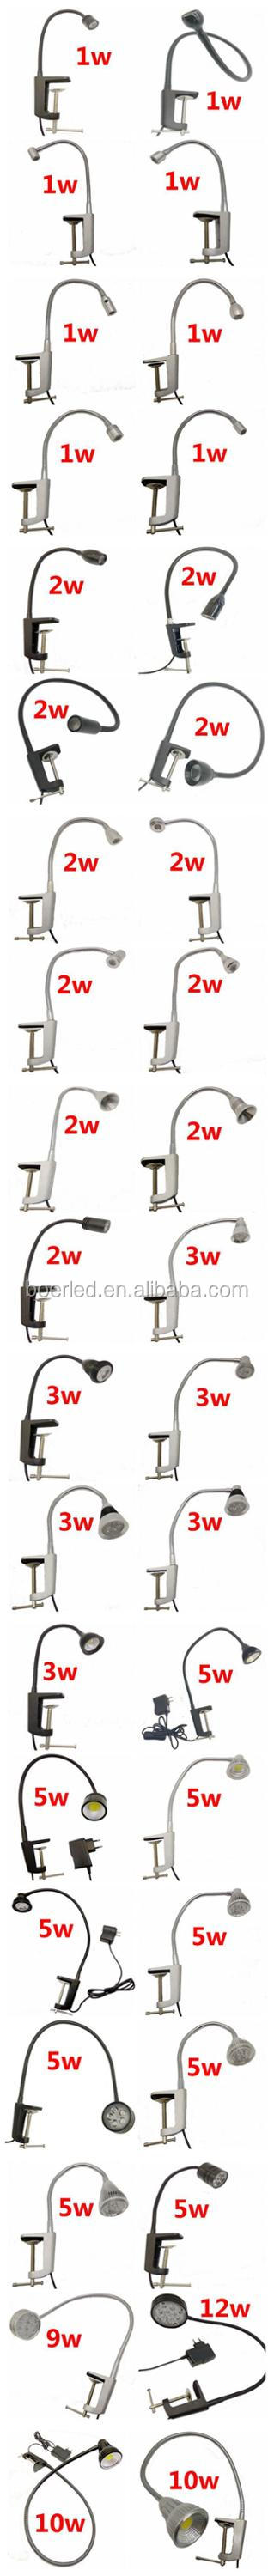 5W LED SEWING MACHINE TABLE CLAMP LAMP